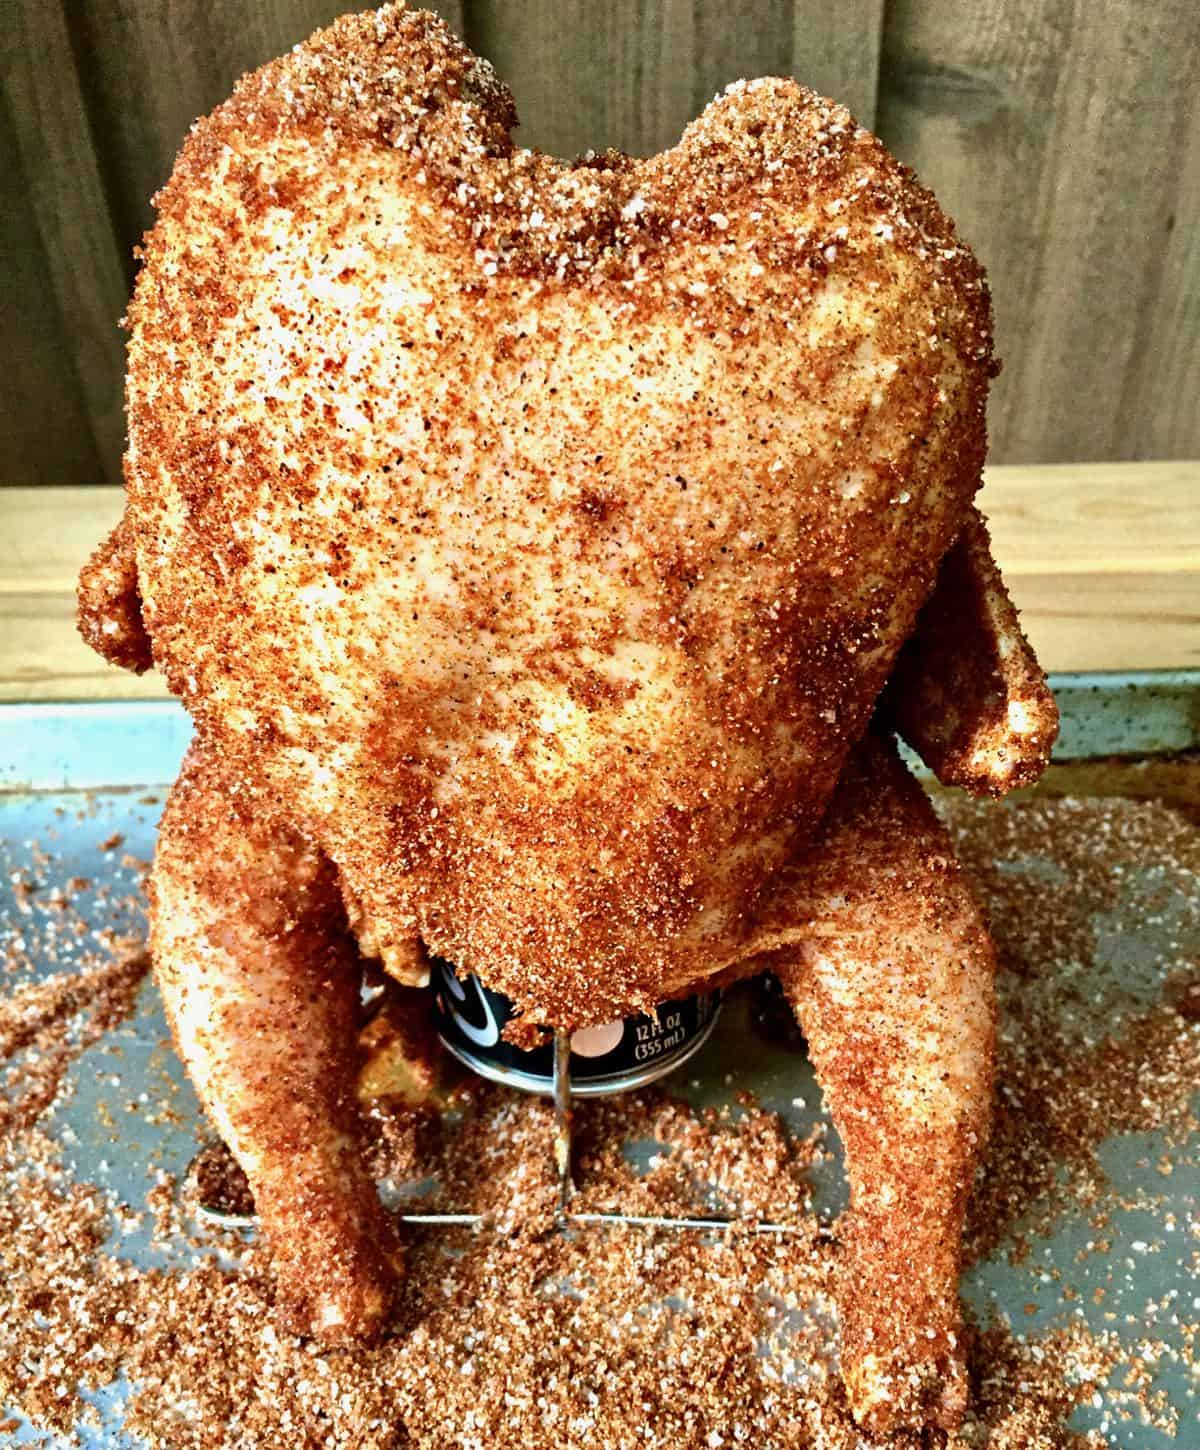 Poultry sitting upright on a beer can covered with a savory rub.